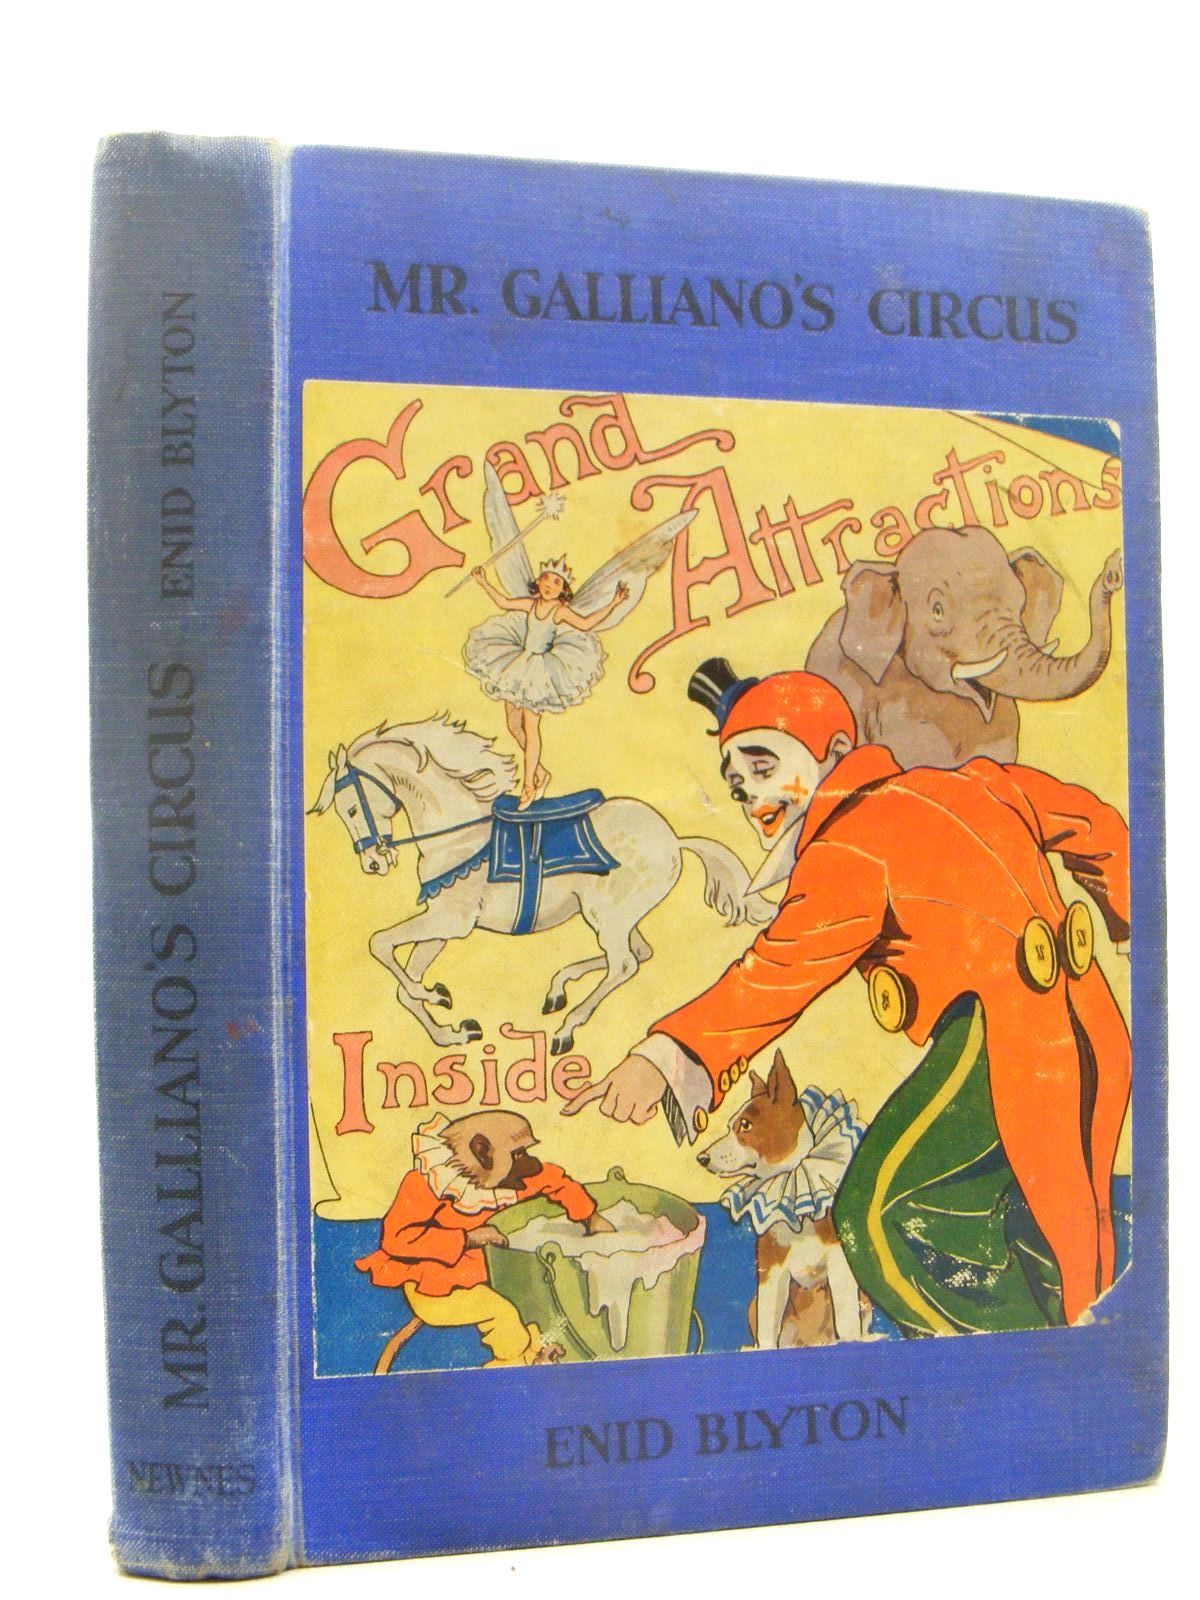 Photo of MR. GALLIANO'S CIRCUS written by Blyton, Enid illustrated by Davie, E.H. published by George Newnes Limited (STOCK CODE: 2124934)  for sale by Stella & Rose's Books